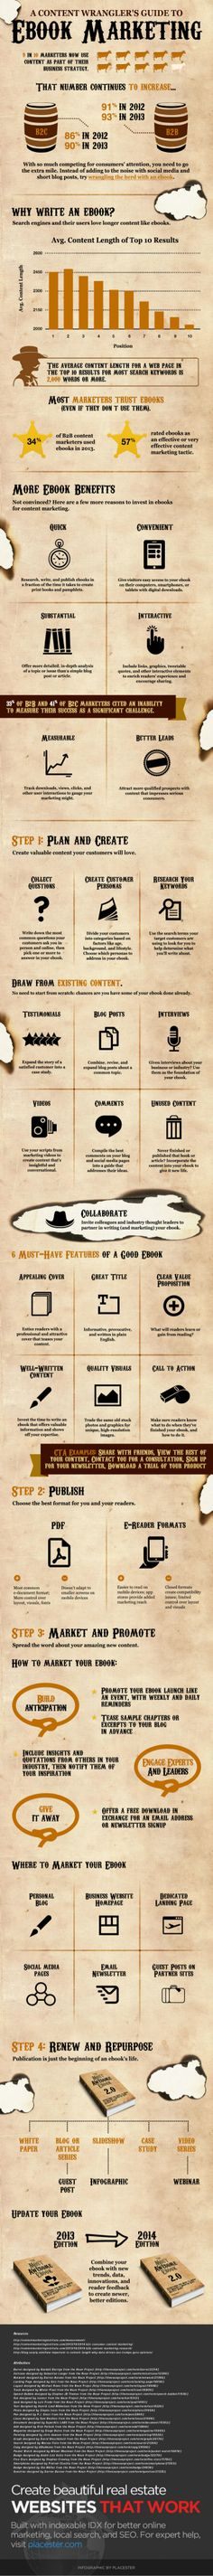 The Content Wranglers Guide to Ebook Marketing by Placester via slideshare #socialmedia #marketing #infographics